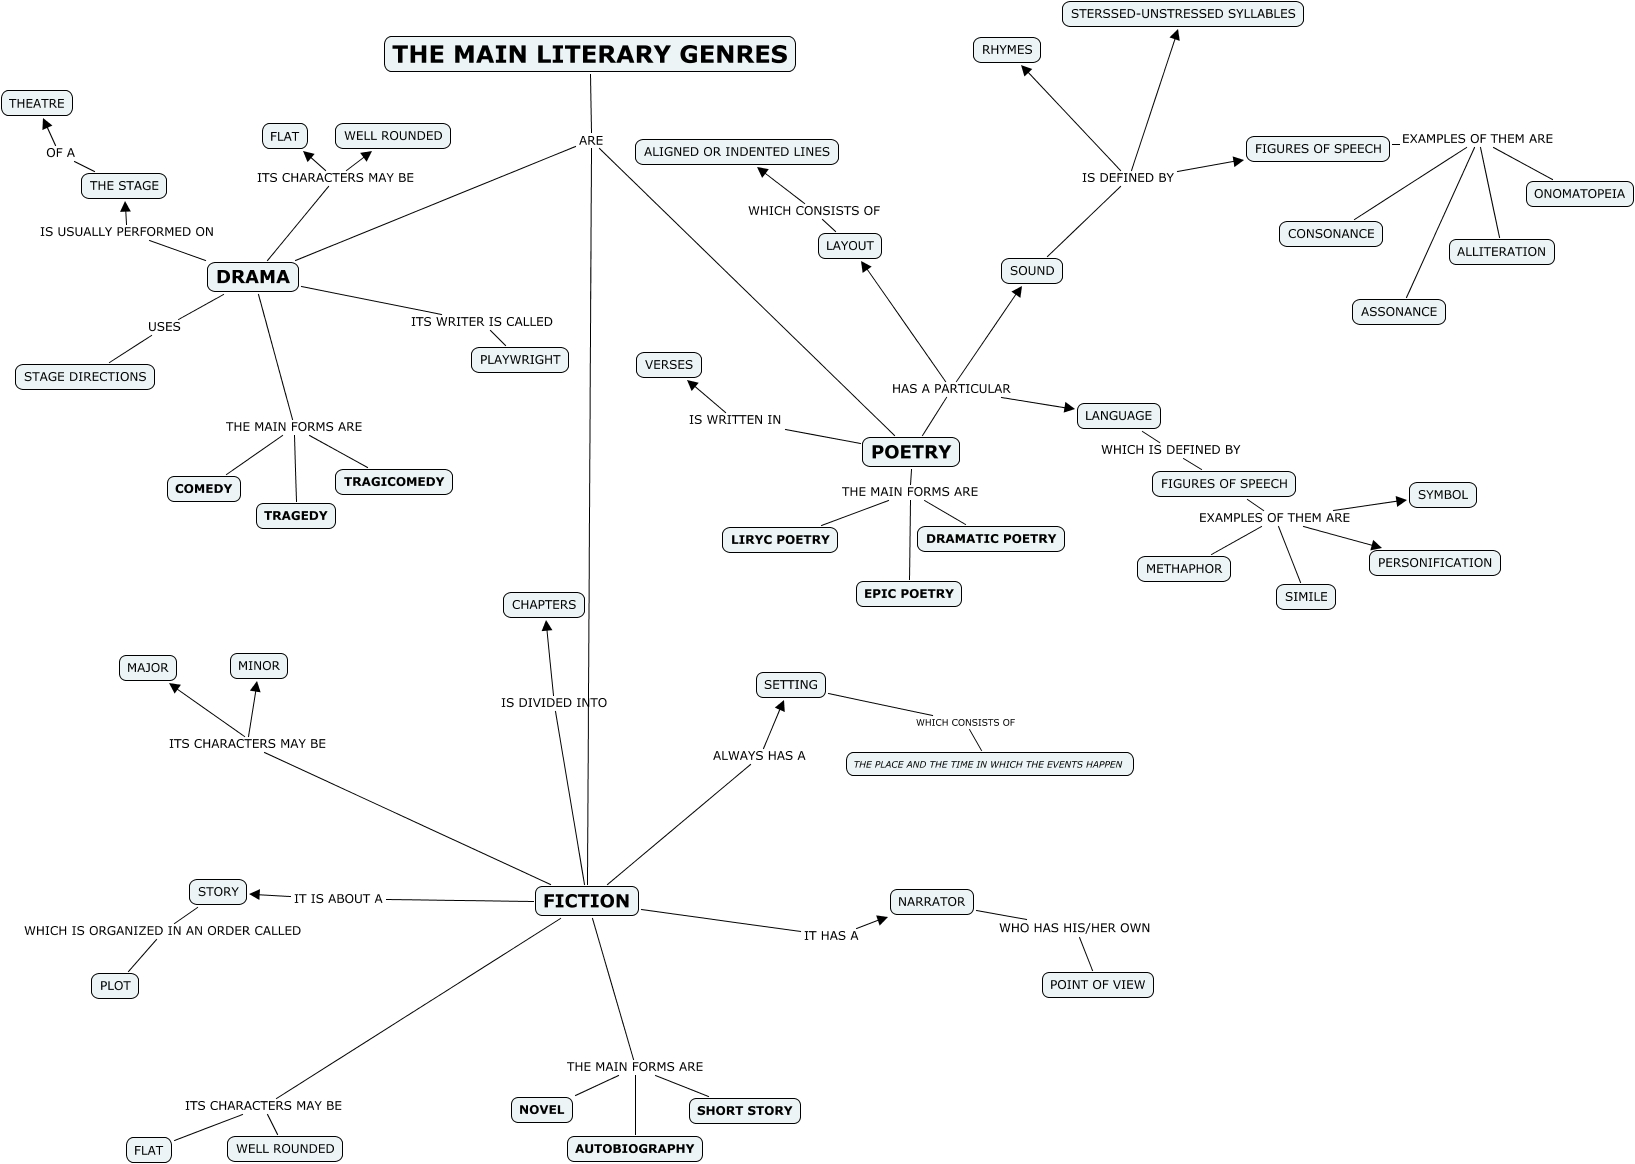 mind map about english literature figures of speech examples of them are alliteration figures of speech examples of them are consonance figures of speech examples of them are symbol